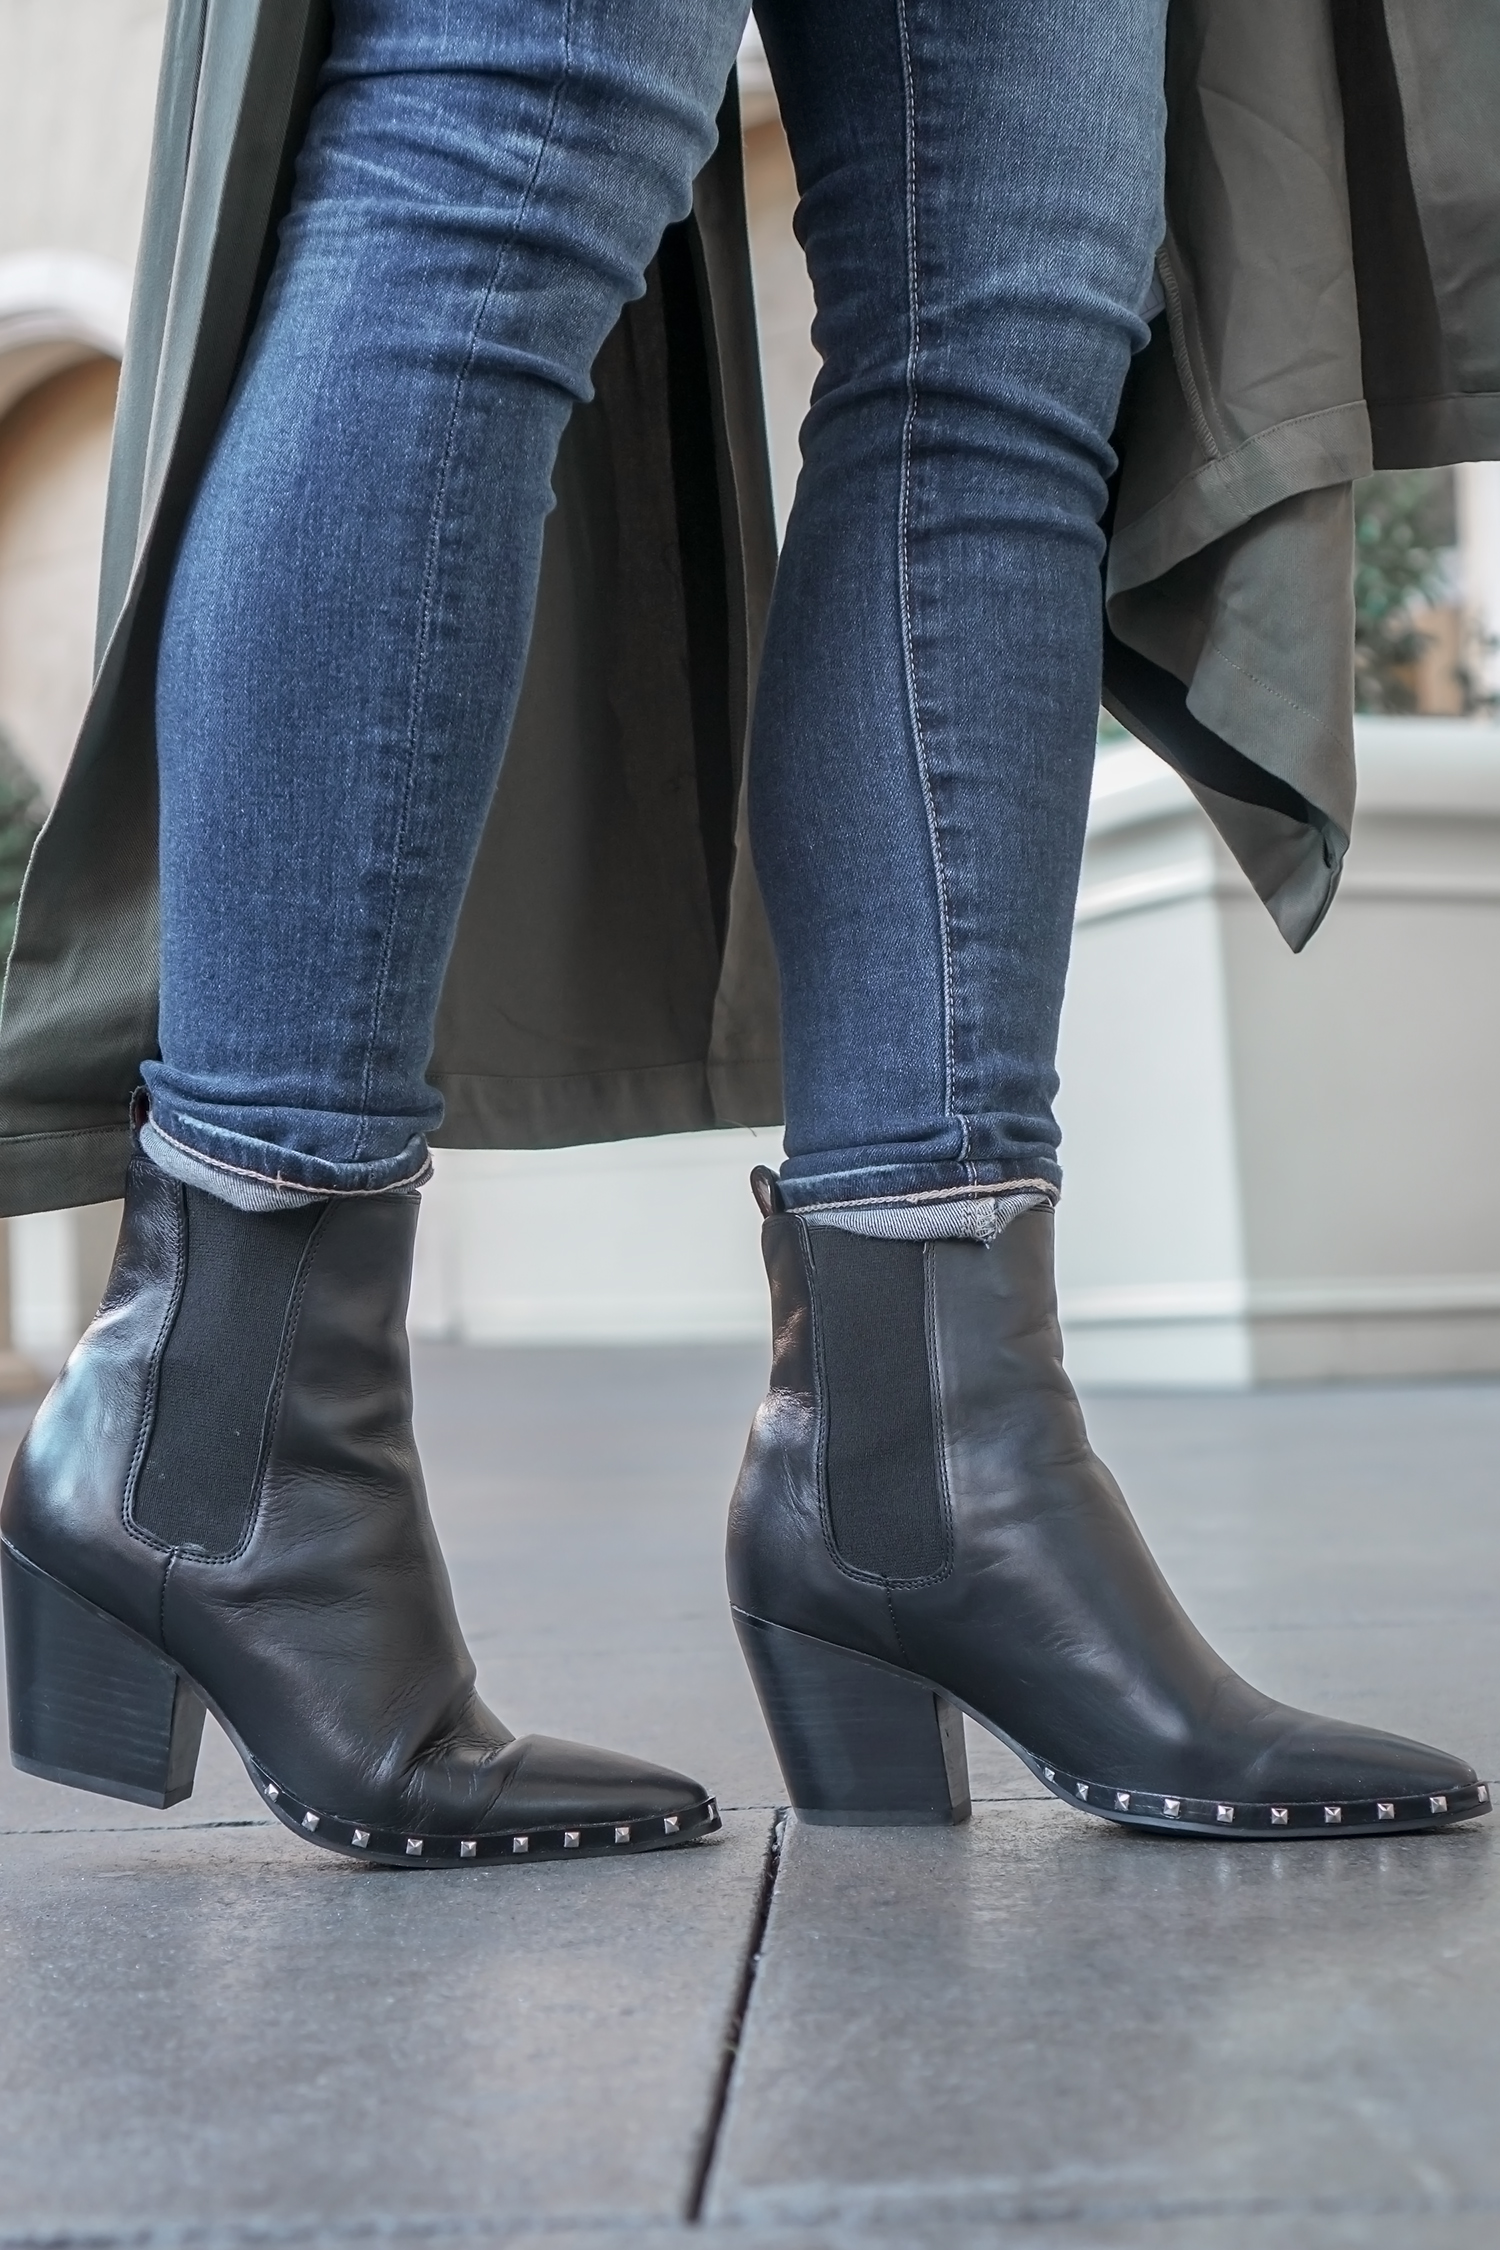 Tony Bianco Ankle Boots, Studded Ankle Boots